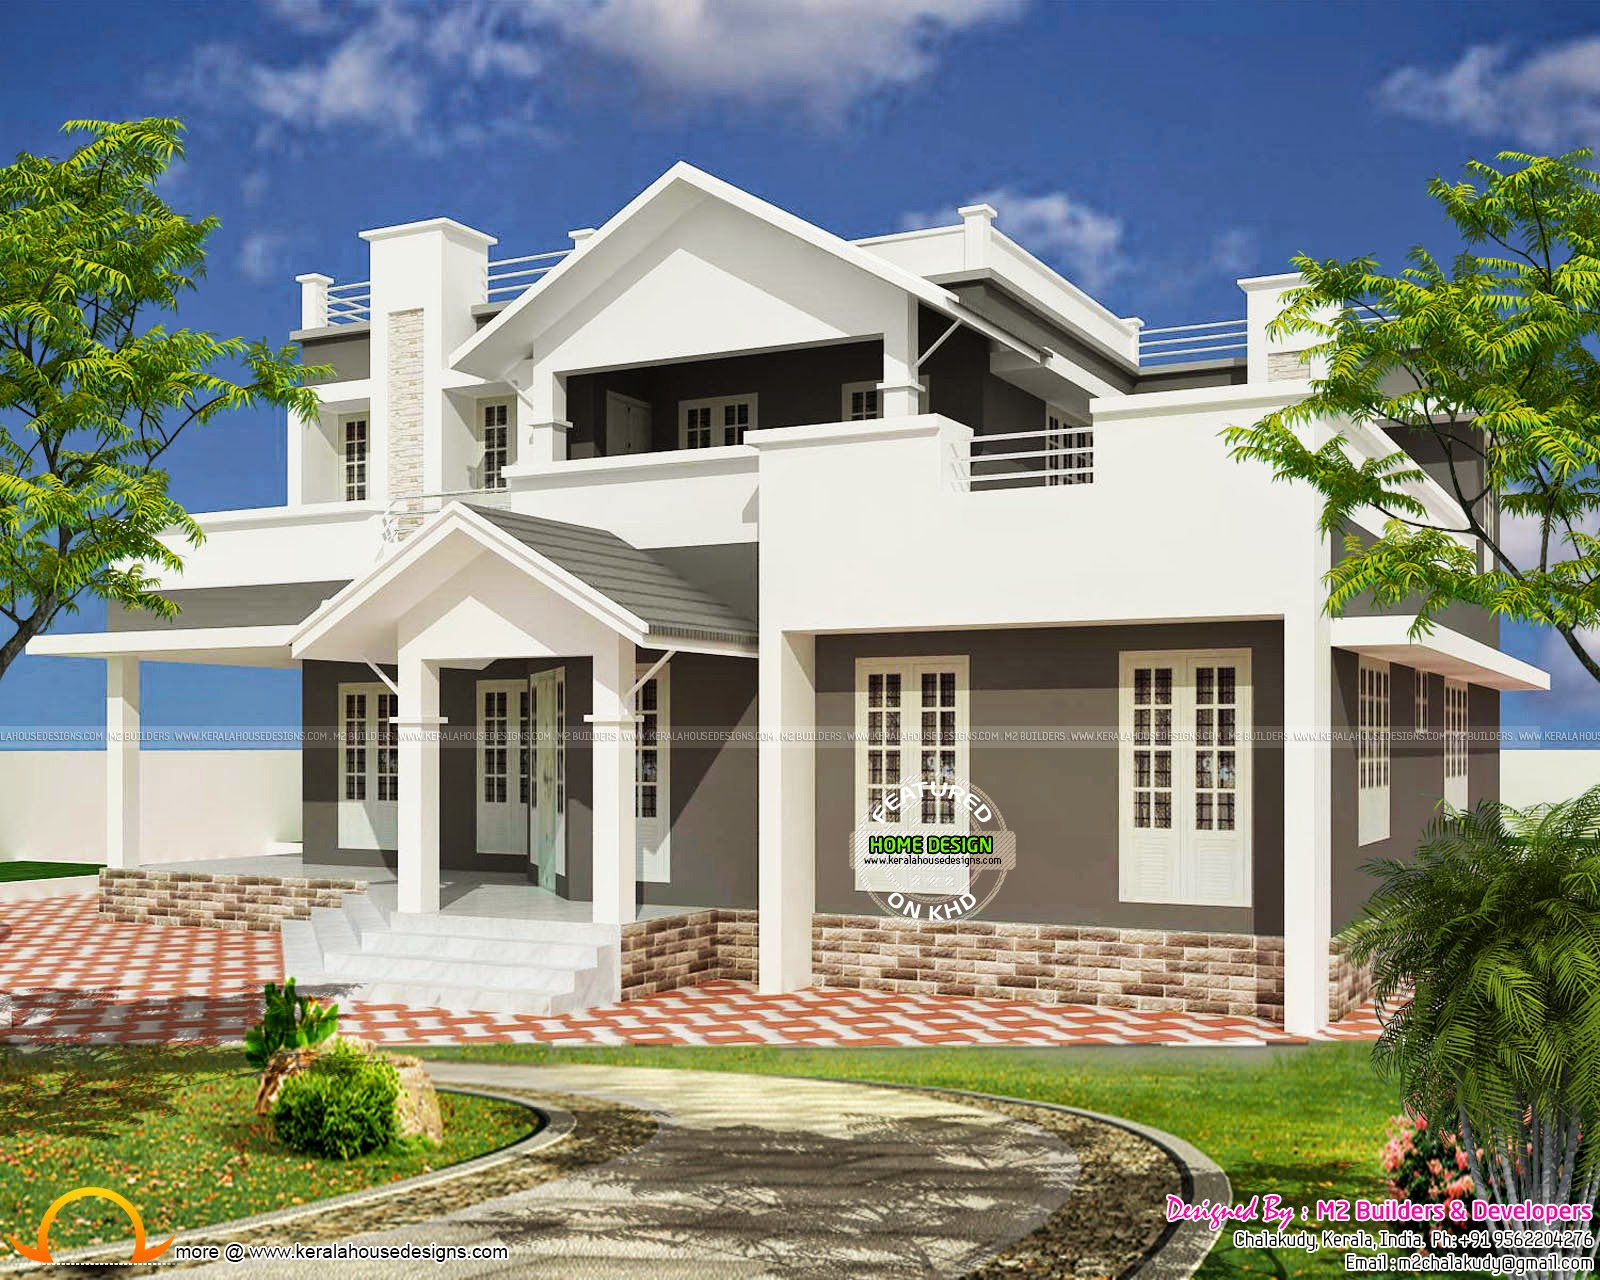 House design by m2 builders in chalakudy